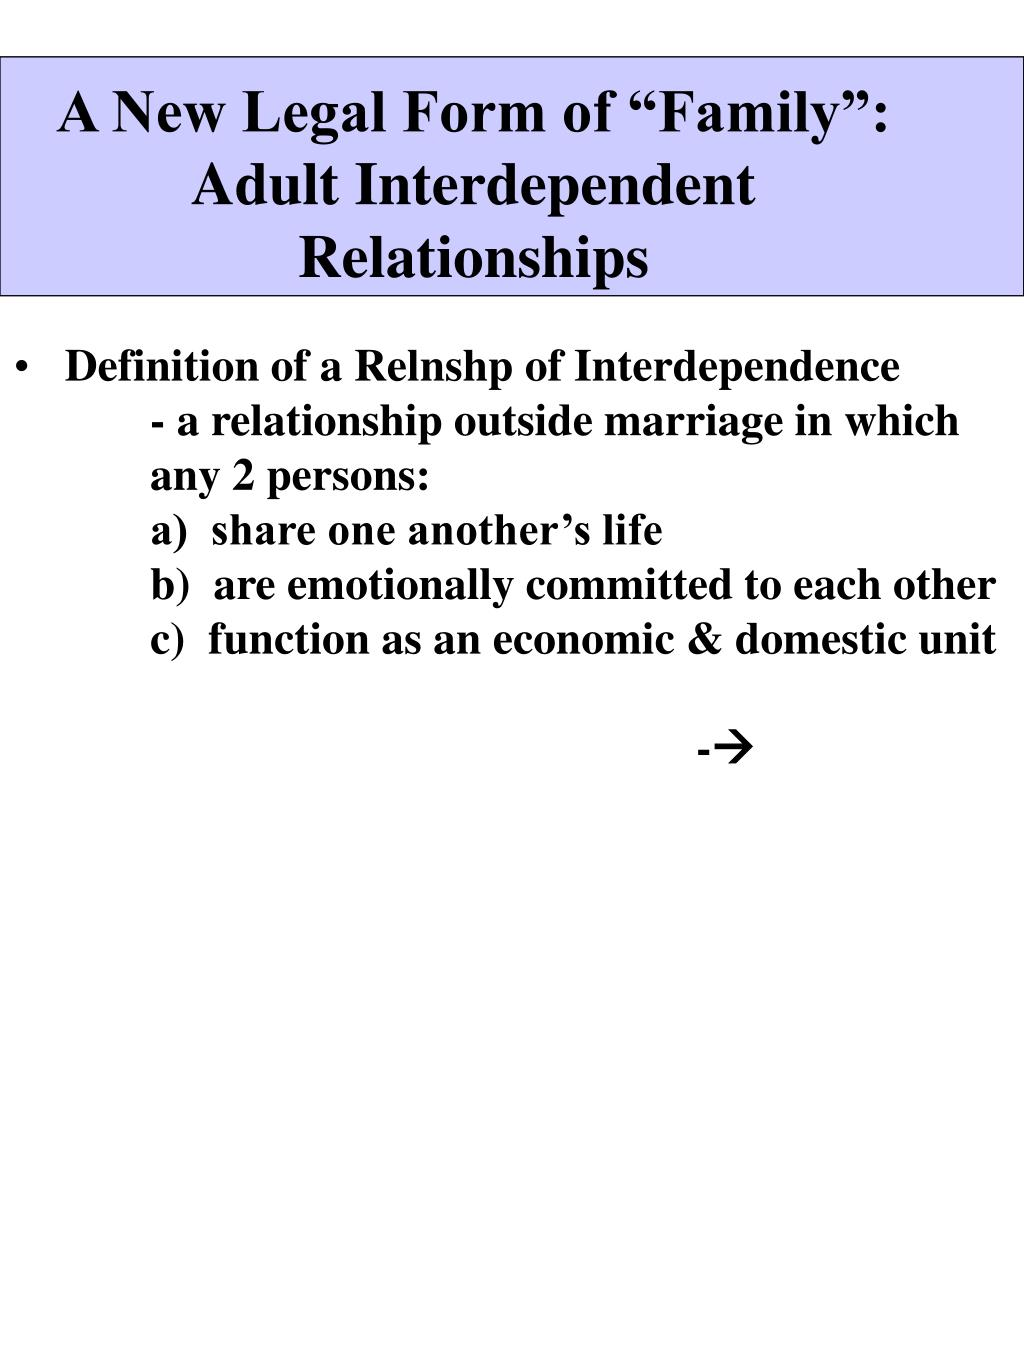 kin relationship definition urban